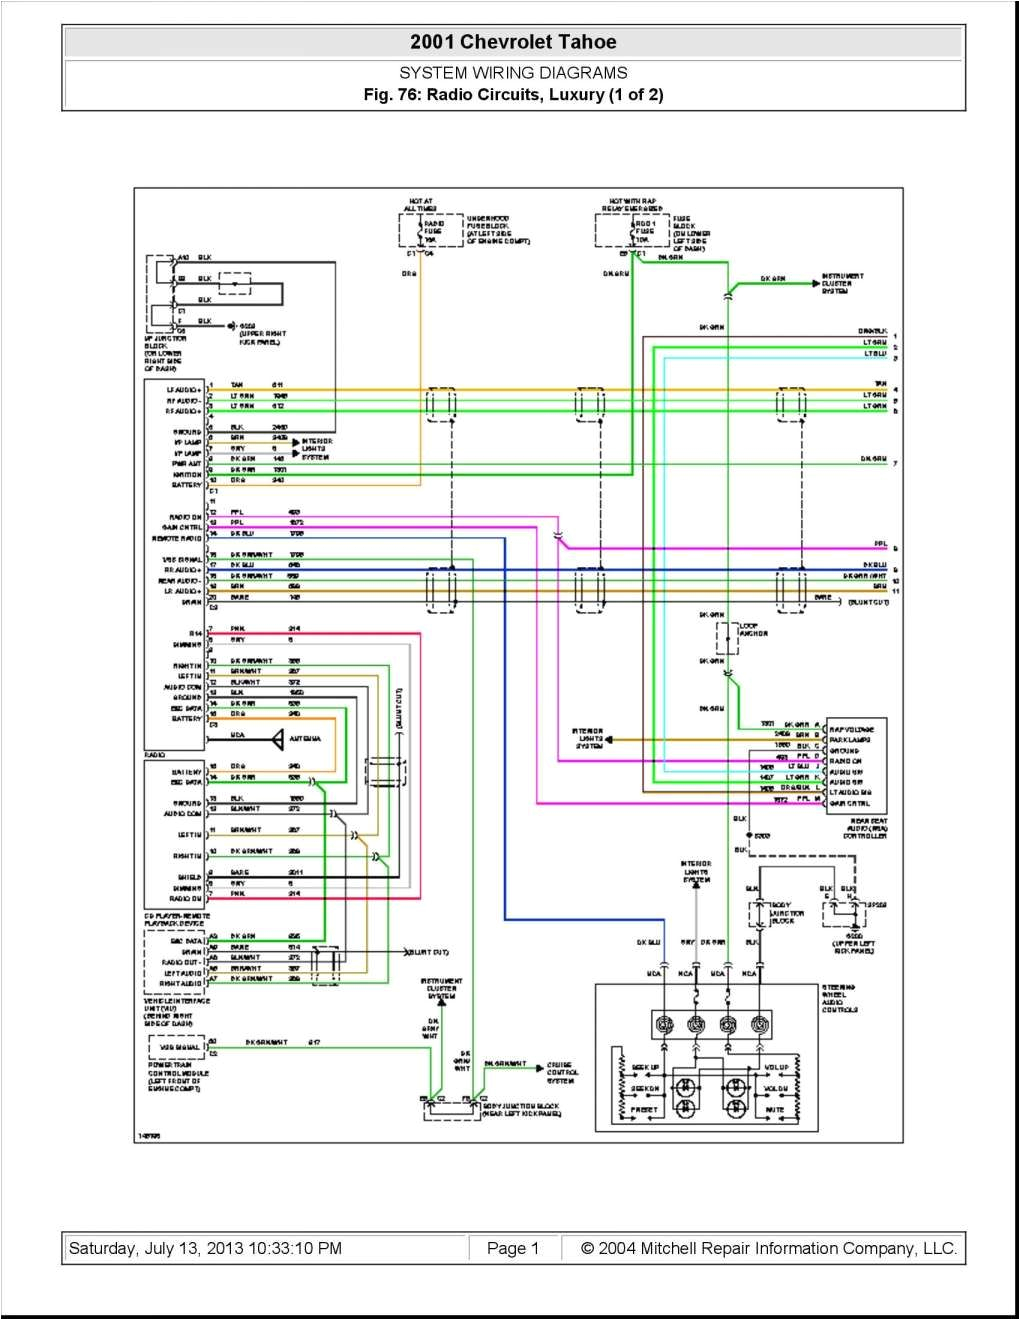 2012 Chevy Traverse Wiring Diagram 2011 Chevrolet Silverado Ignition Wiring Diagram Blog